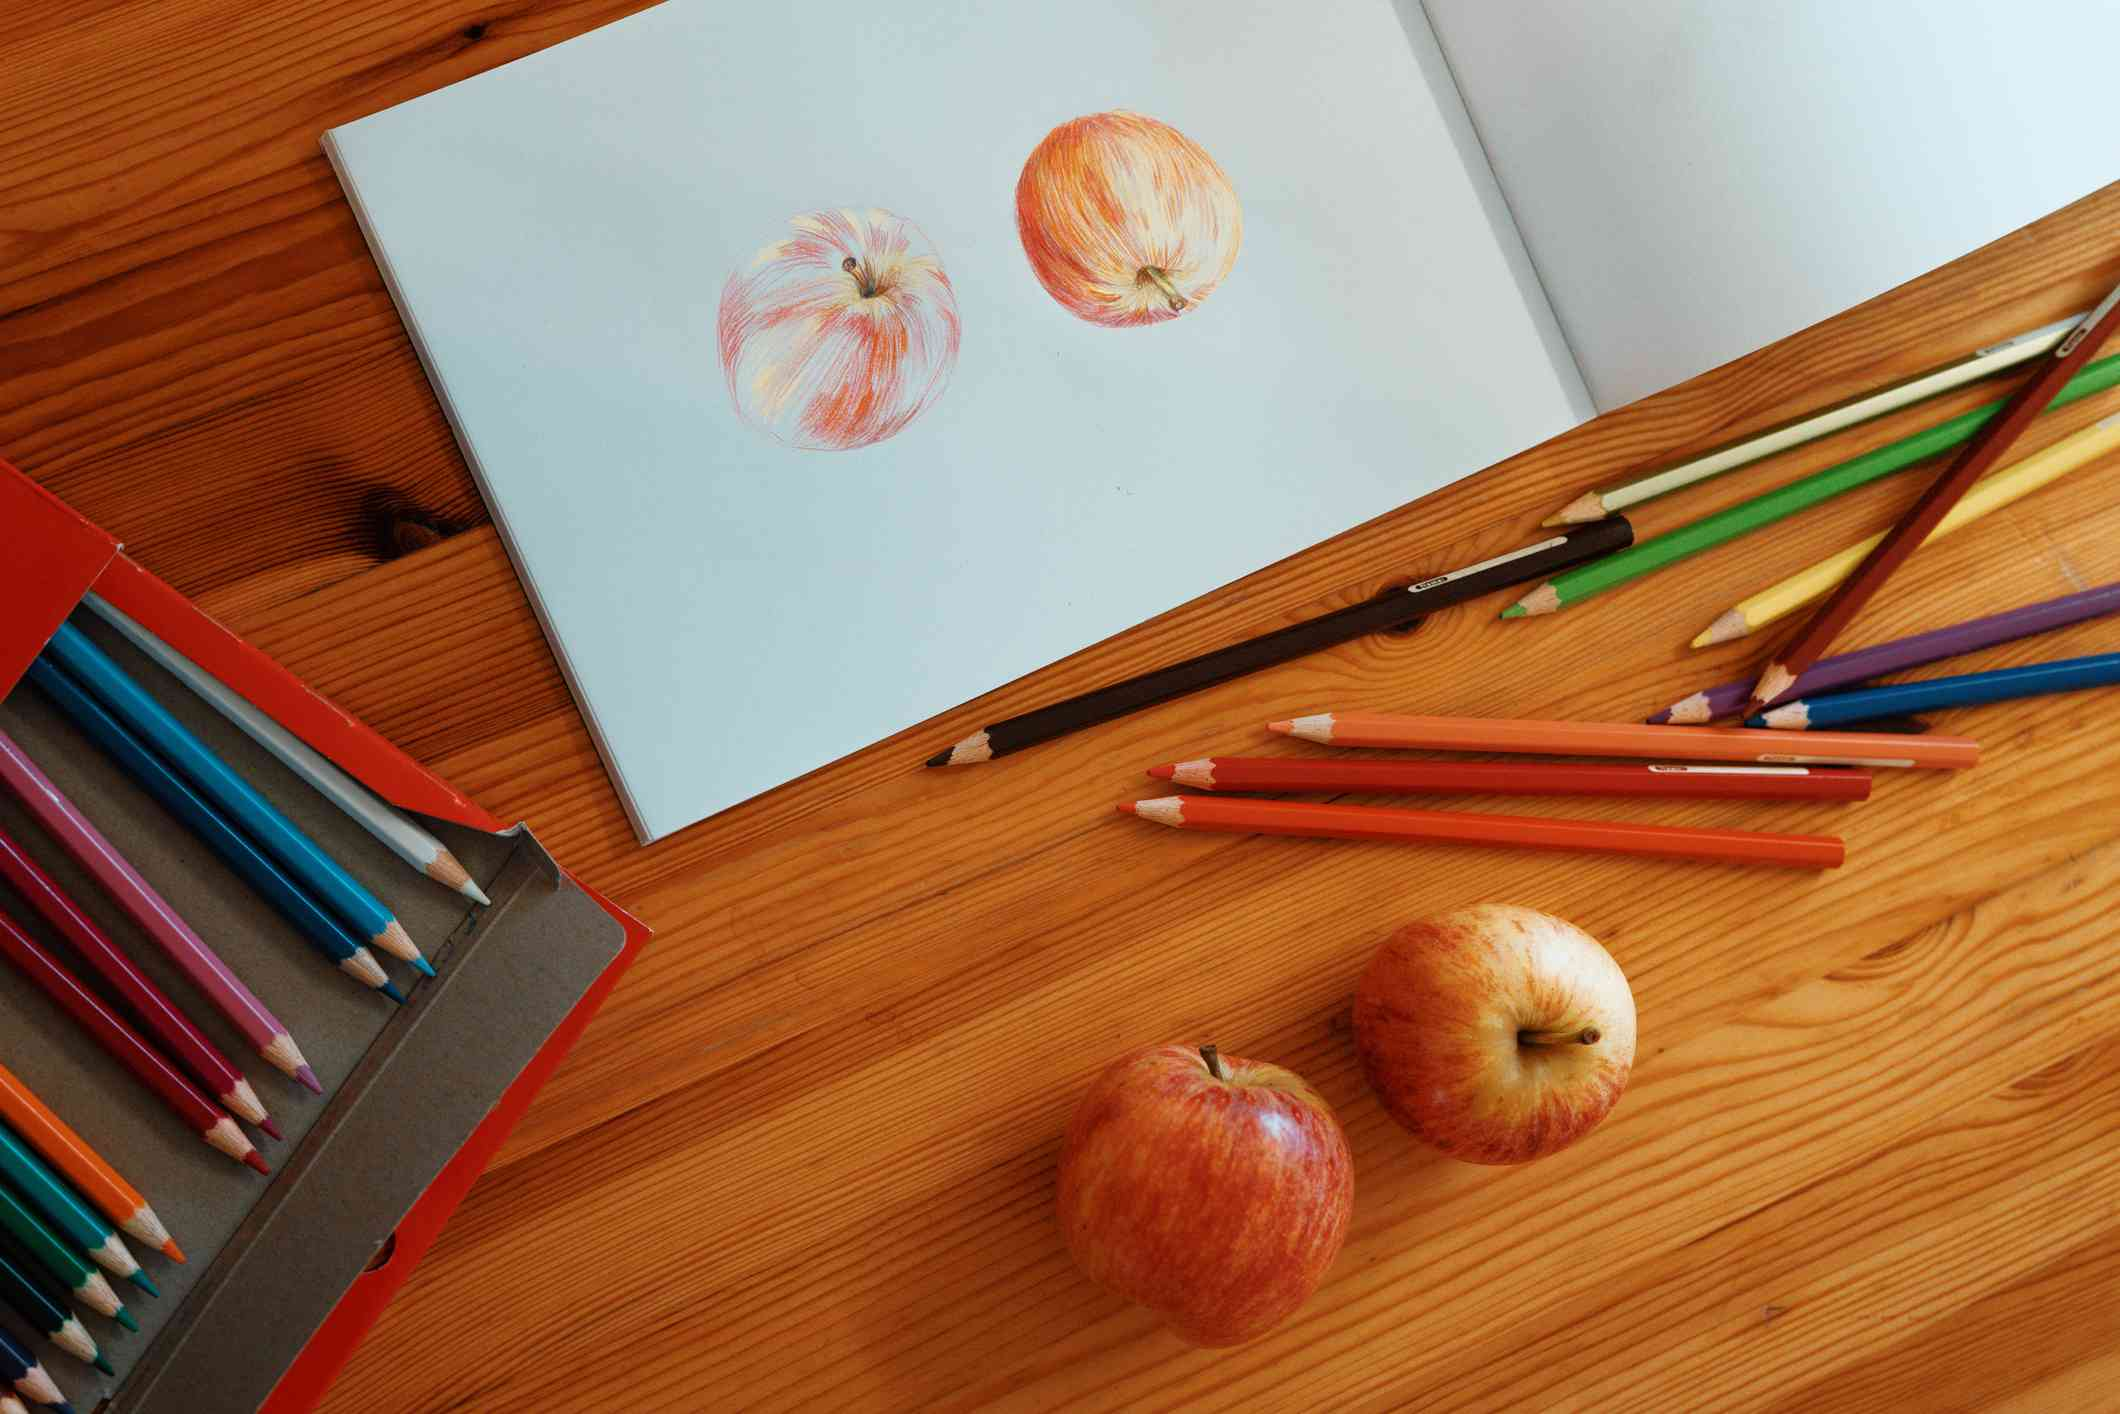 Draw Two Apples Using Colour Pencils on the Table